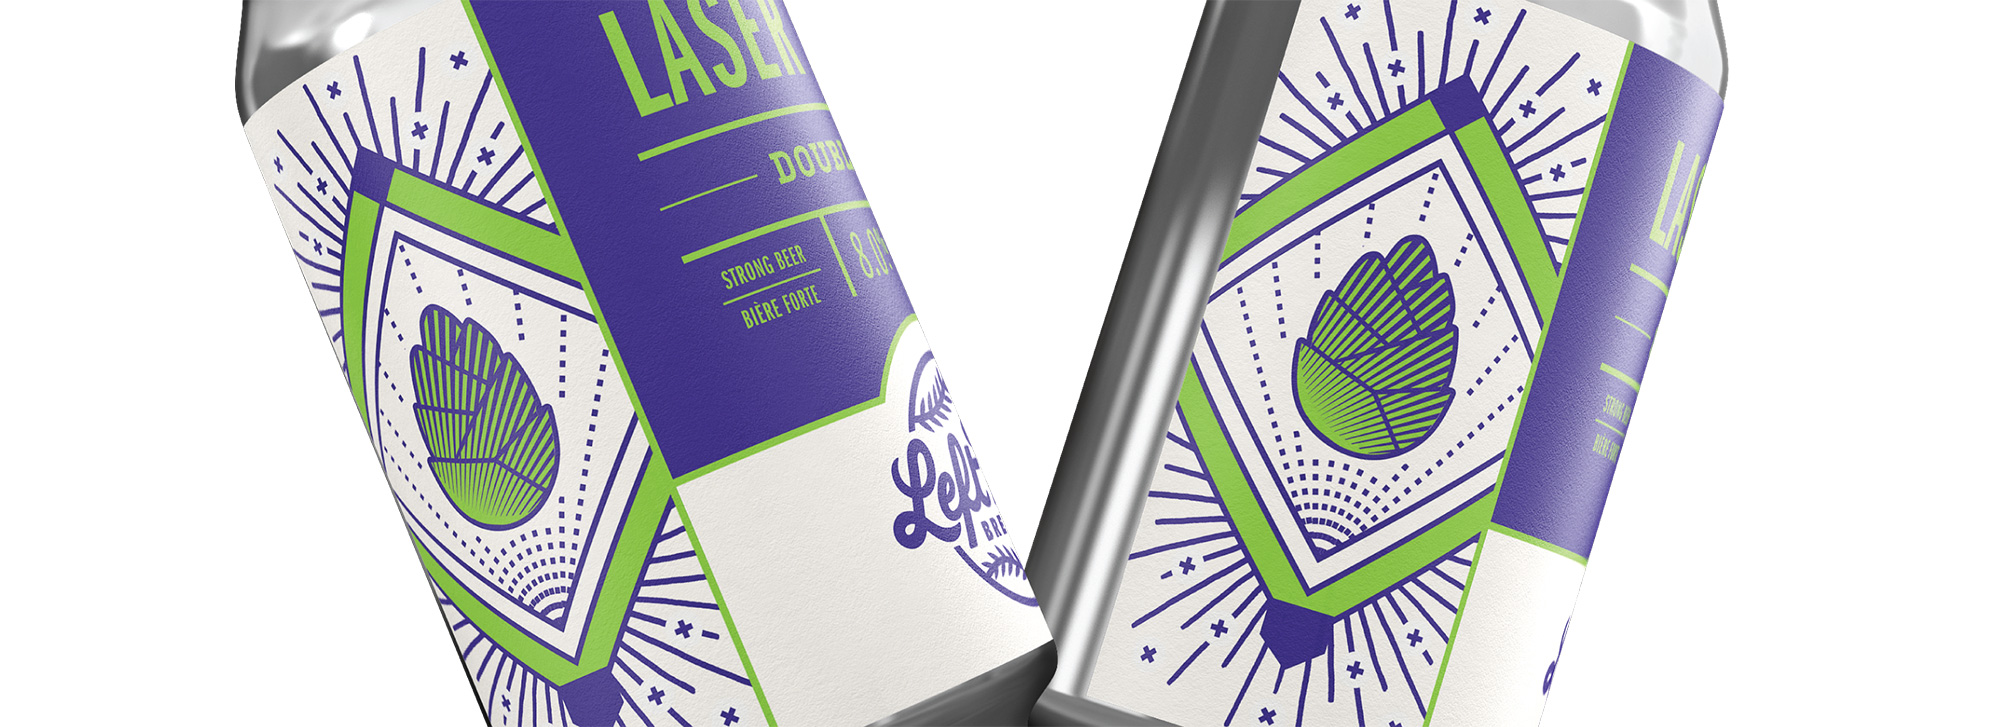 New Logo, Identity, and Packaging for Left Field Brewery by CODO